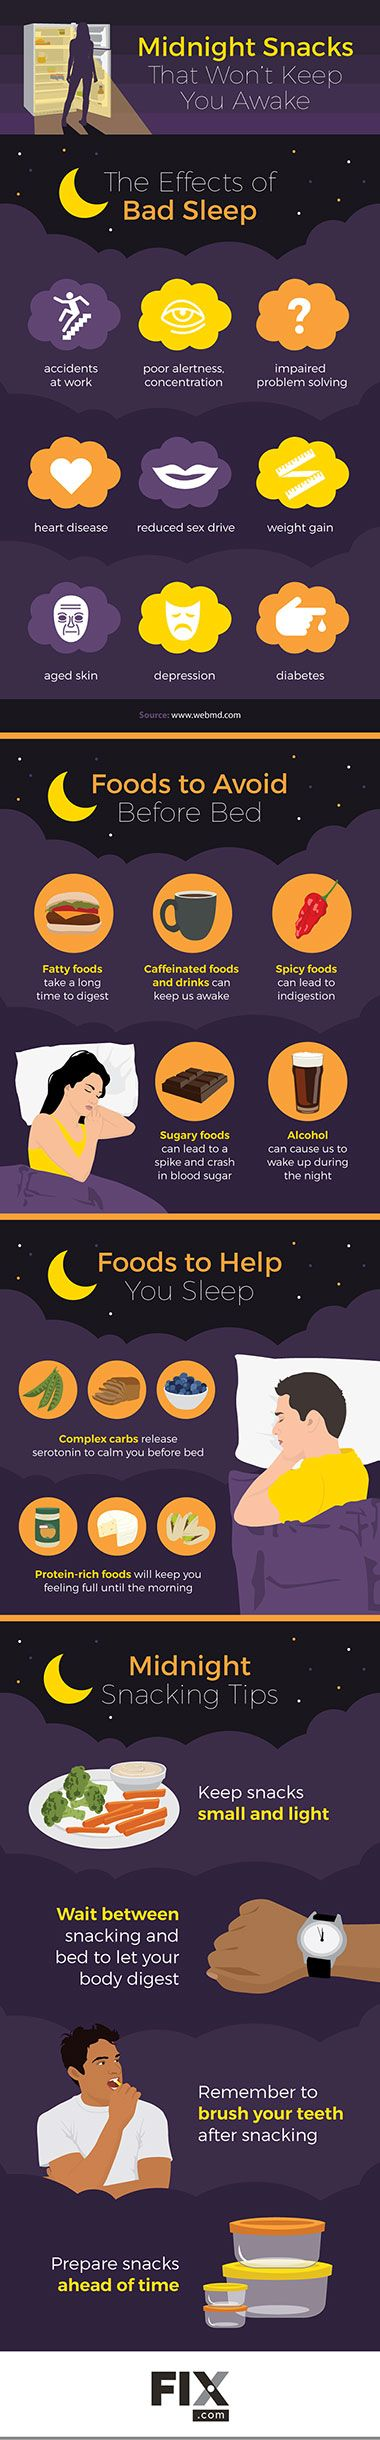 Midnight Snacks That Won't Keep You Awake [Infographic]